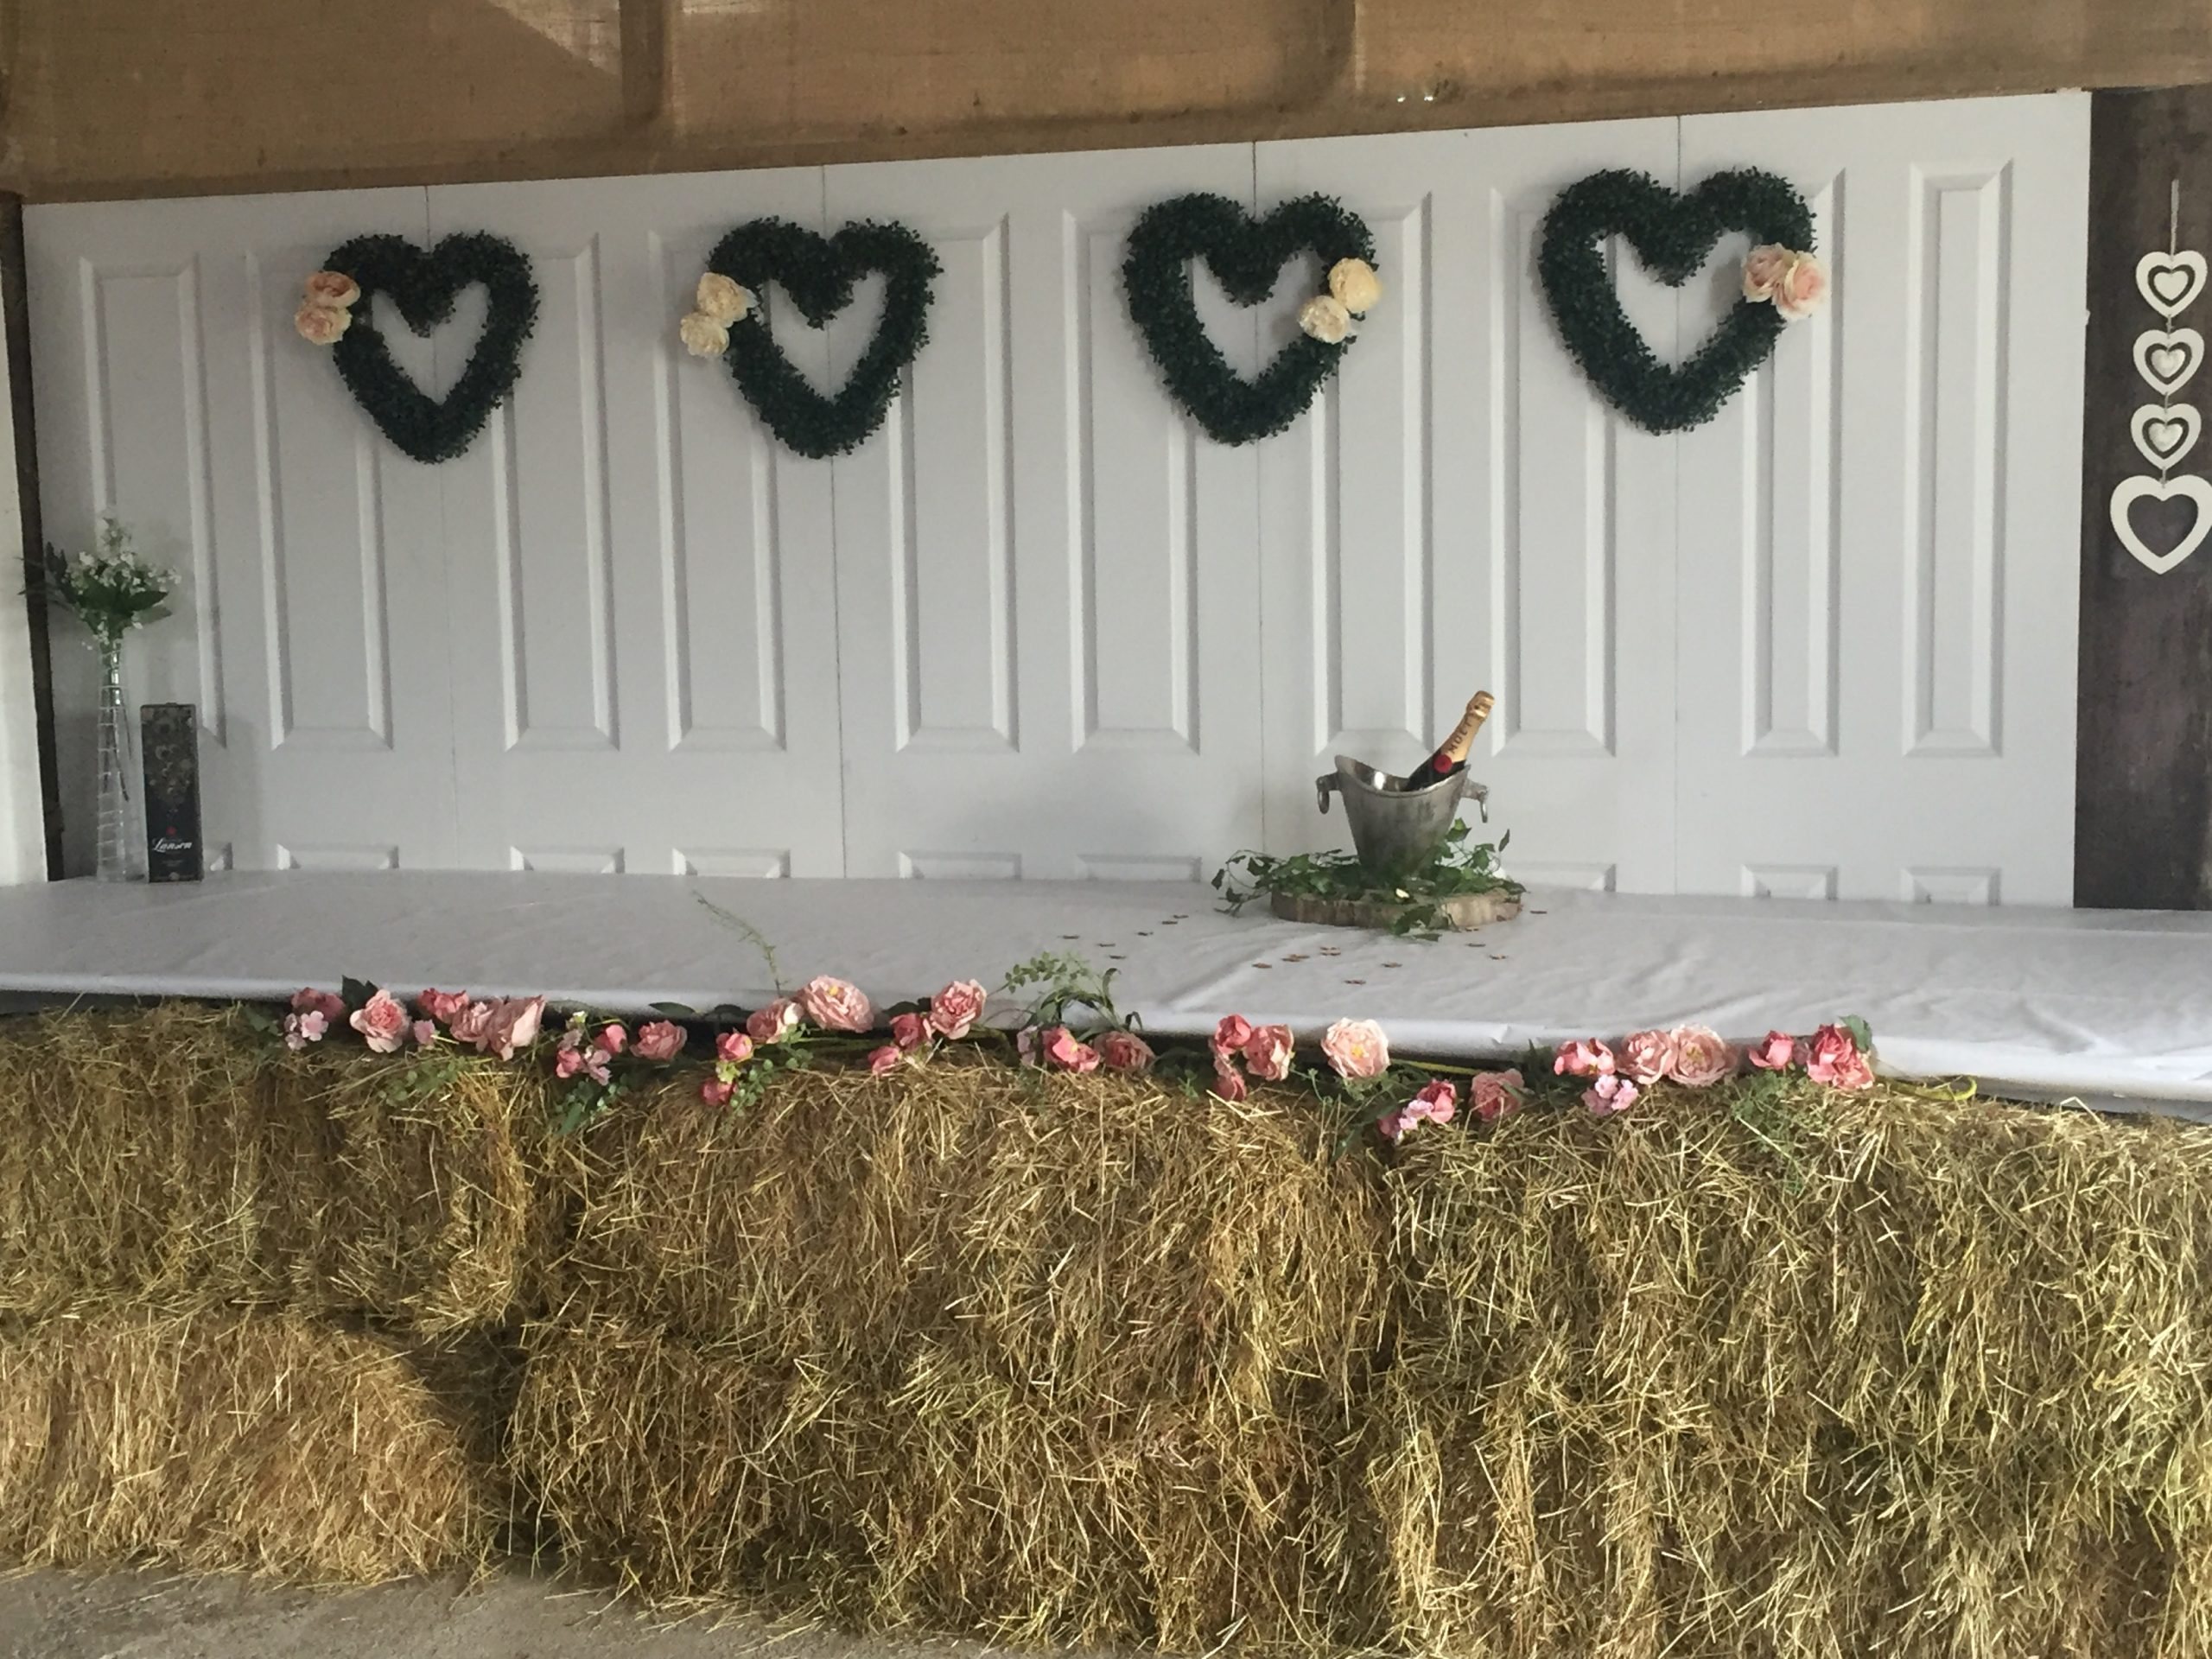 beautifully decororated banquette table festooned with pink flowers and hearts